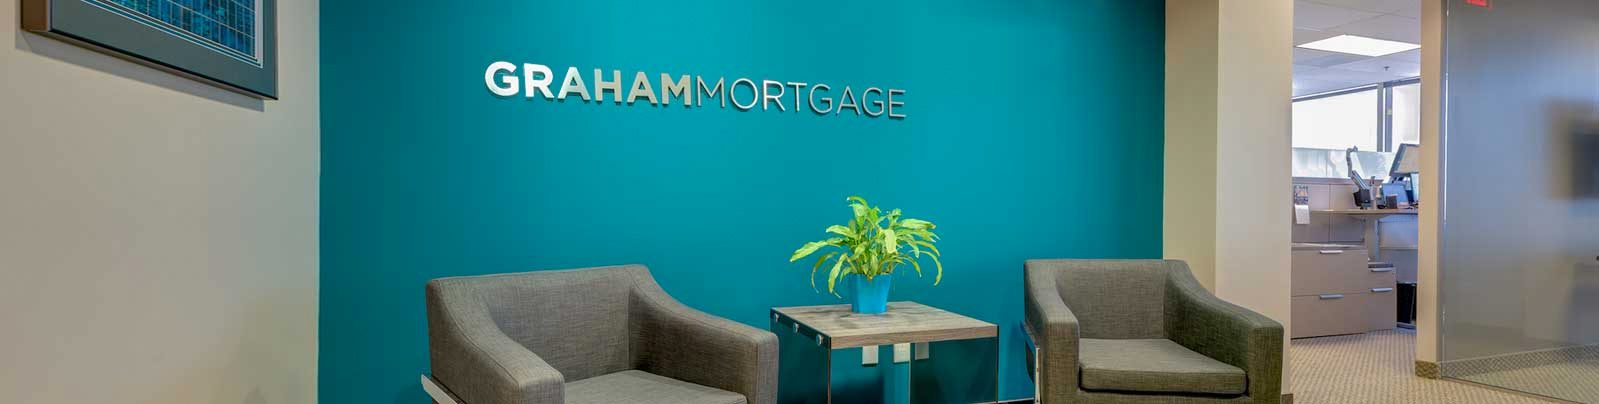 Graham Mortgage offices